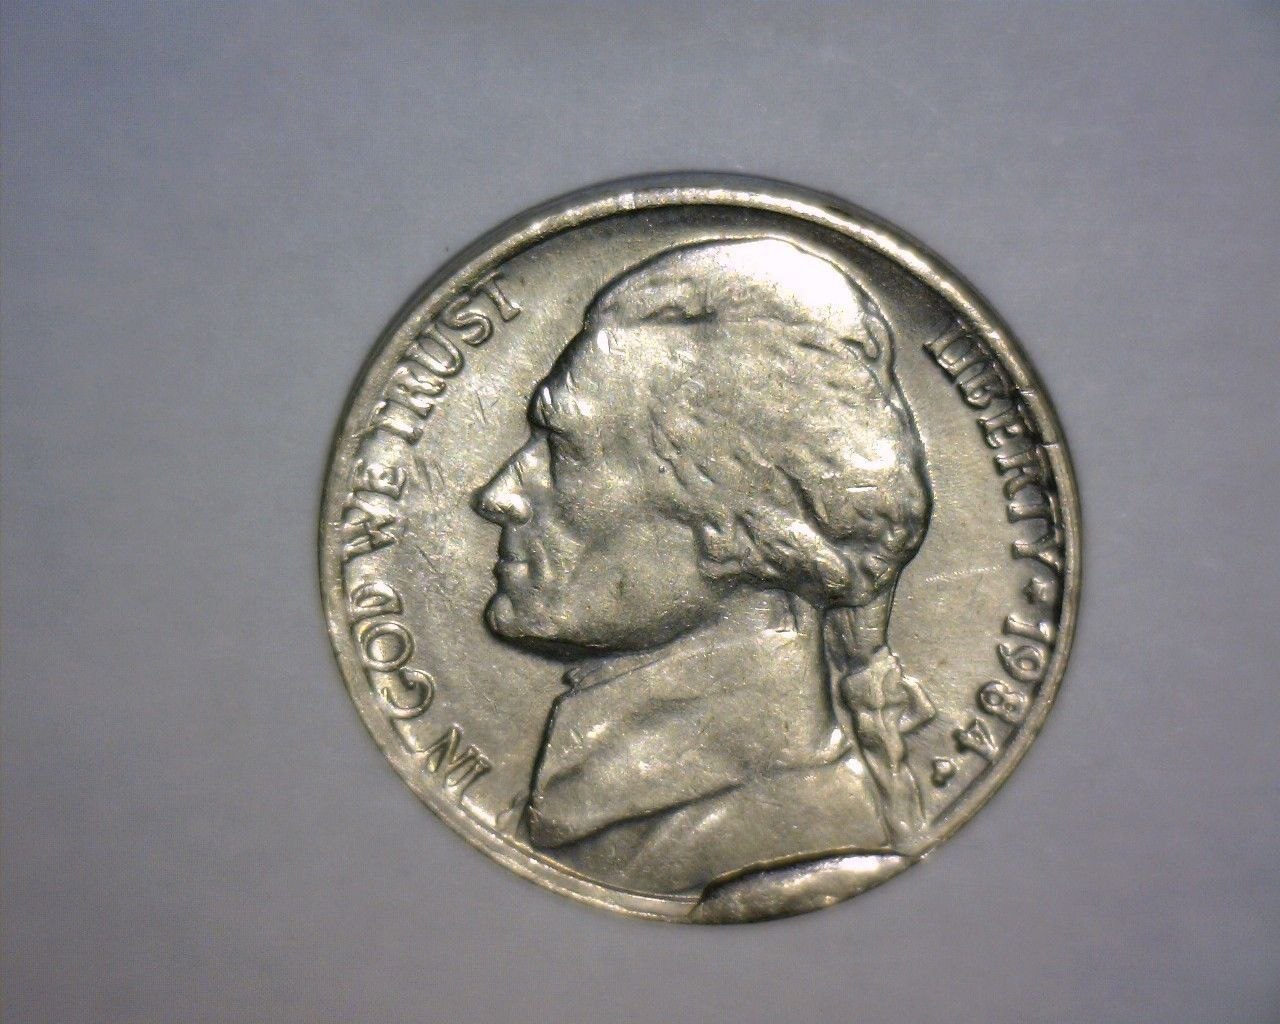 error #errorcoins 1984 P JEFFERSON NICKEL, MAJOR DIE BREAK, OBVERSE